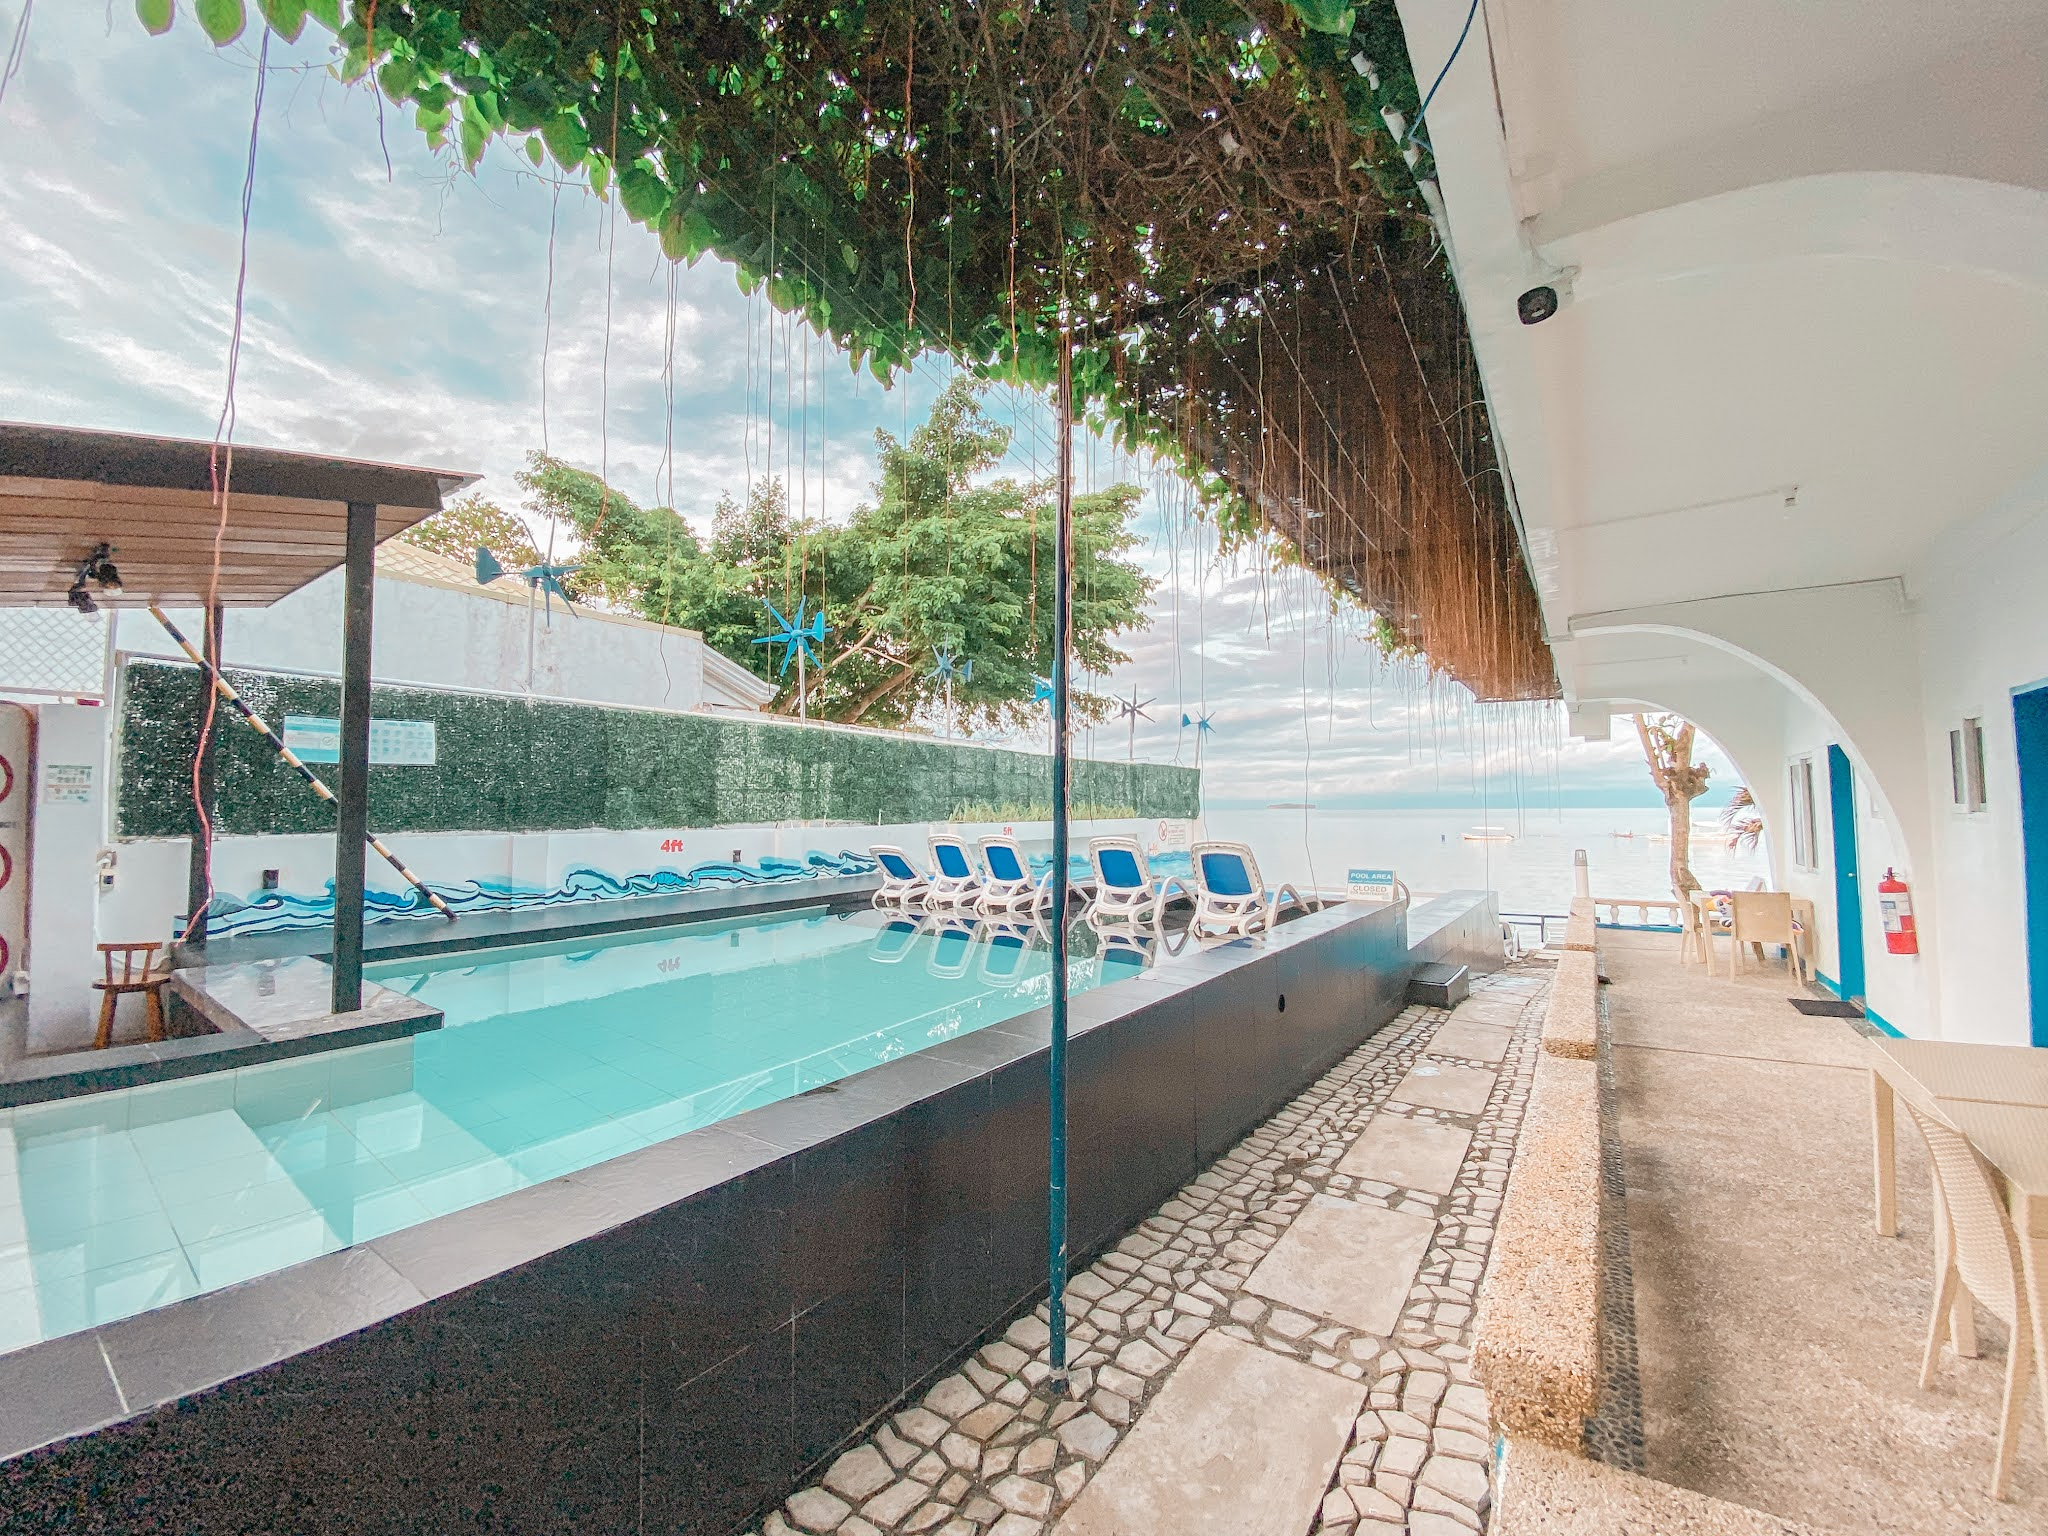 Staycation Series: Pescadores Seaview Suites in Moalboal, Cebu